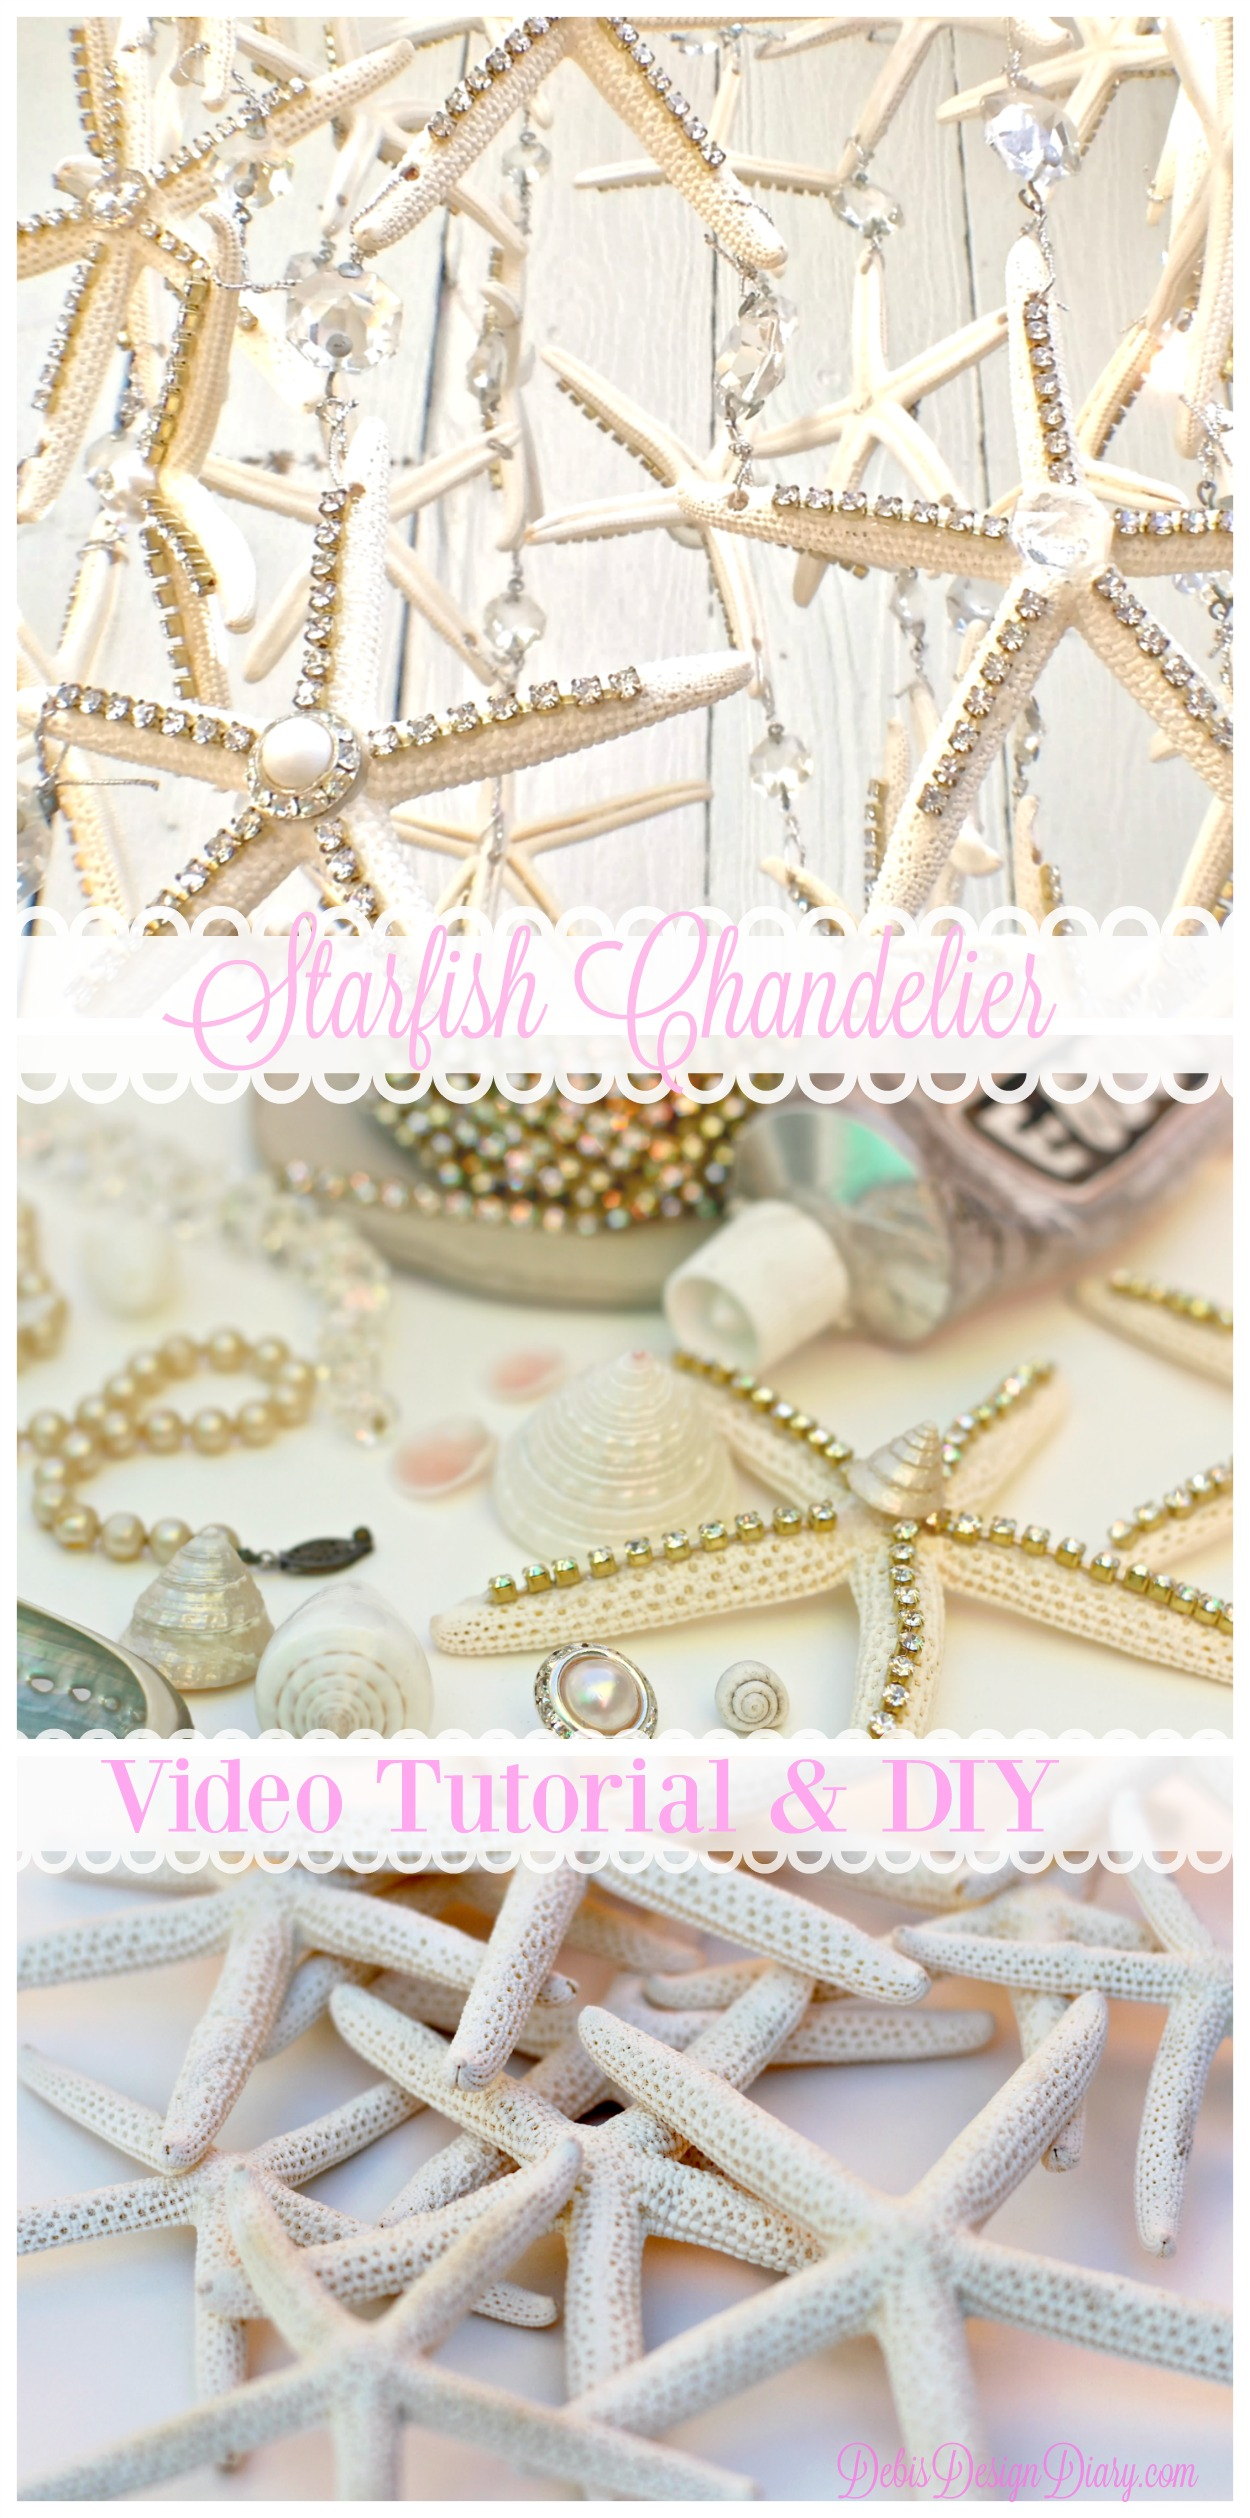 Starfish chandelier tutorial debis design diary how to make a starfish chandelier aloadofball Image collections